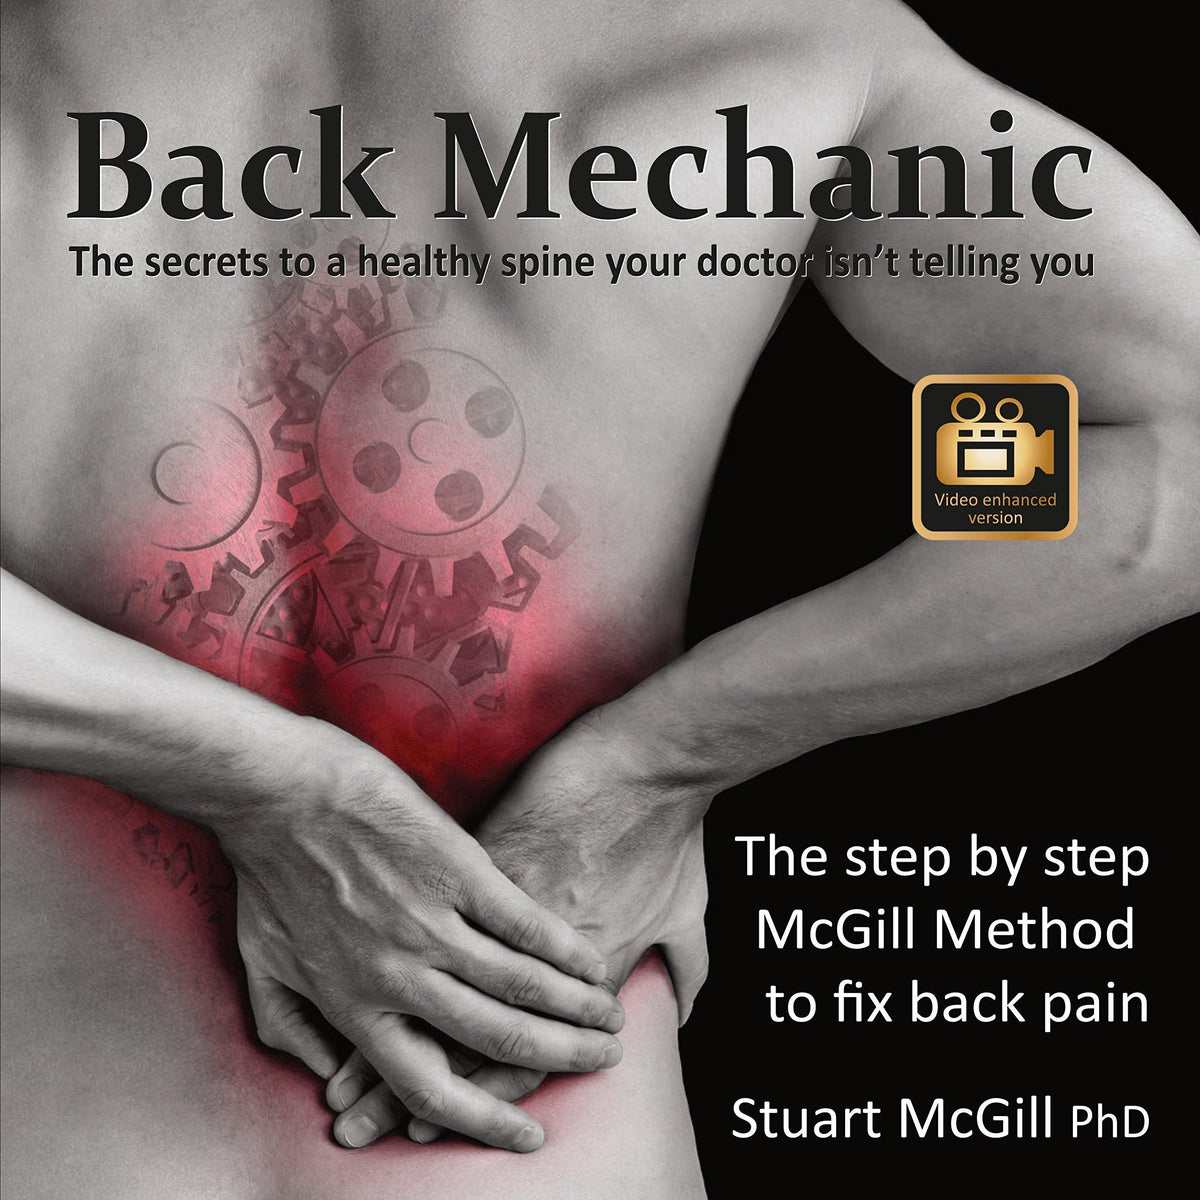 Back Mechanic (Video Enhanced) by Dr. Stuart McGill